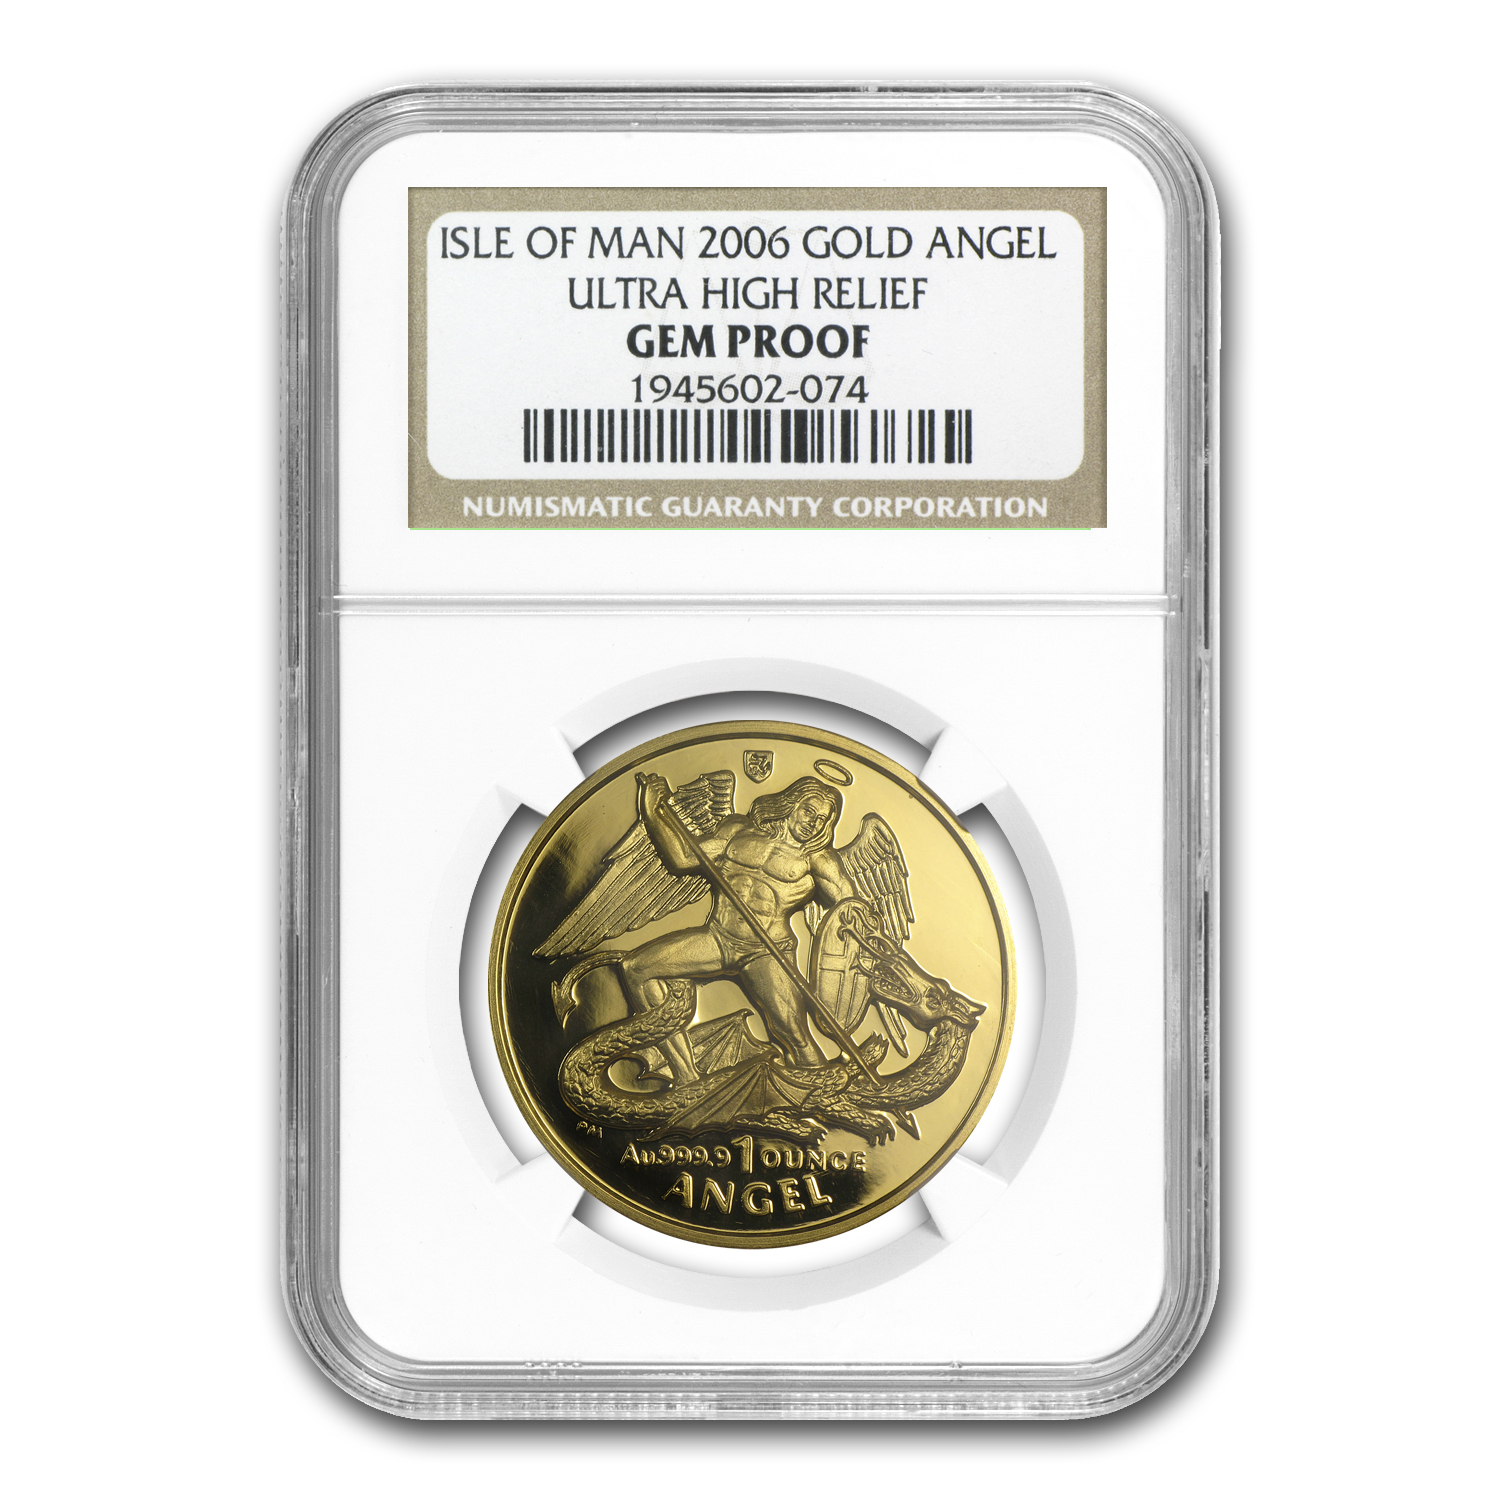 2006 Isle of Man Proof Gold Angel UHR NGC Gem Proof